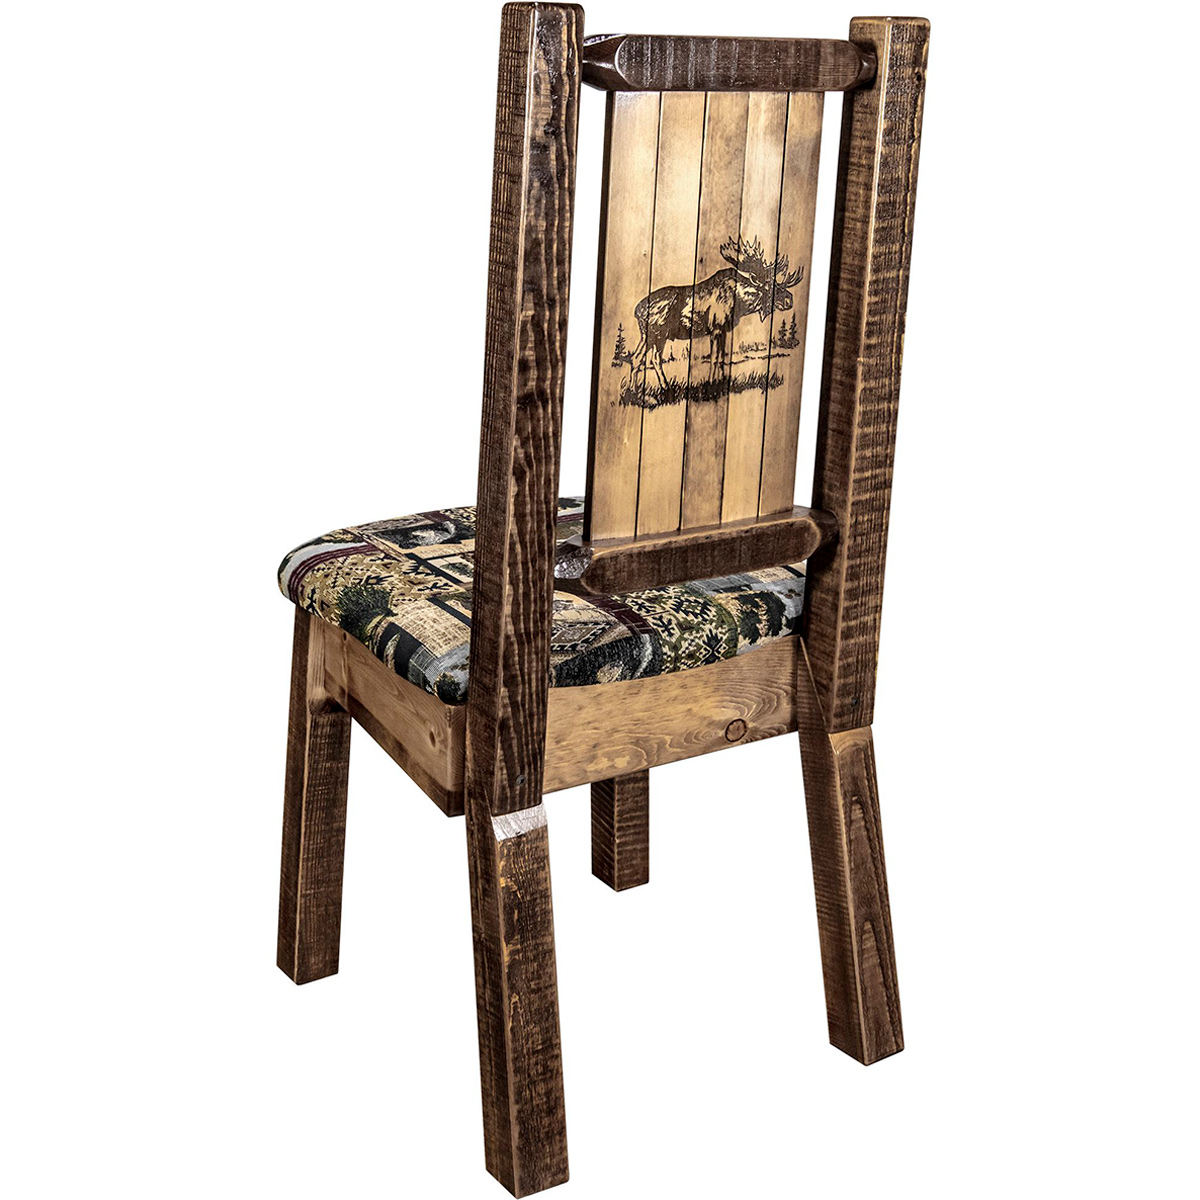 Ranchman's Woodland Upholstery Side Chair with Laser-Engraved Moose Design